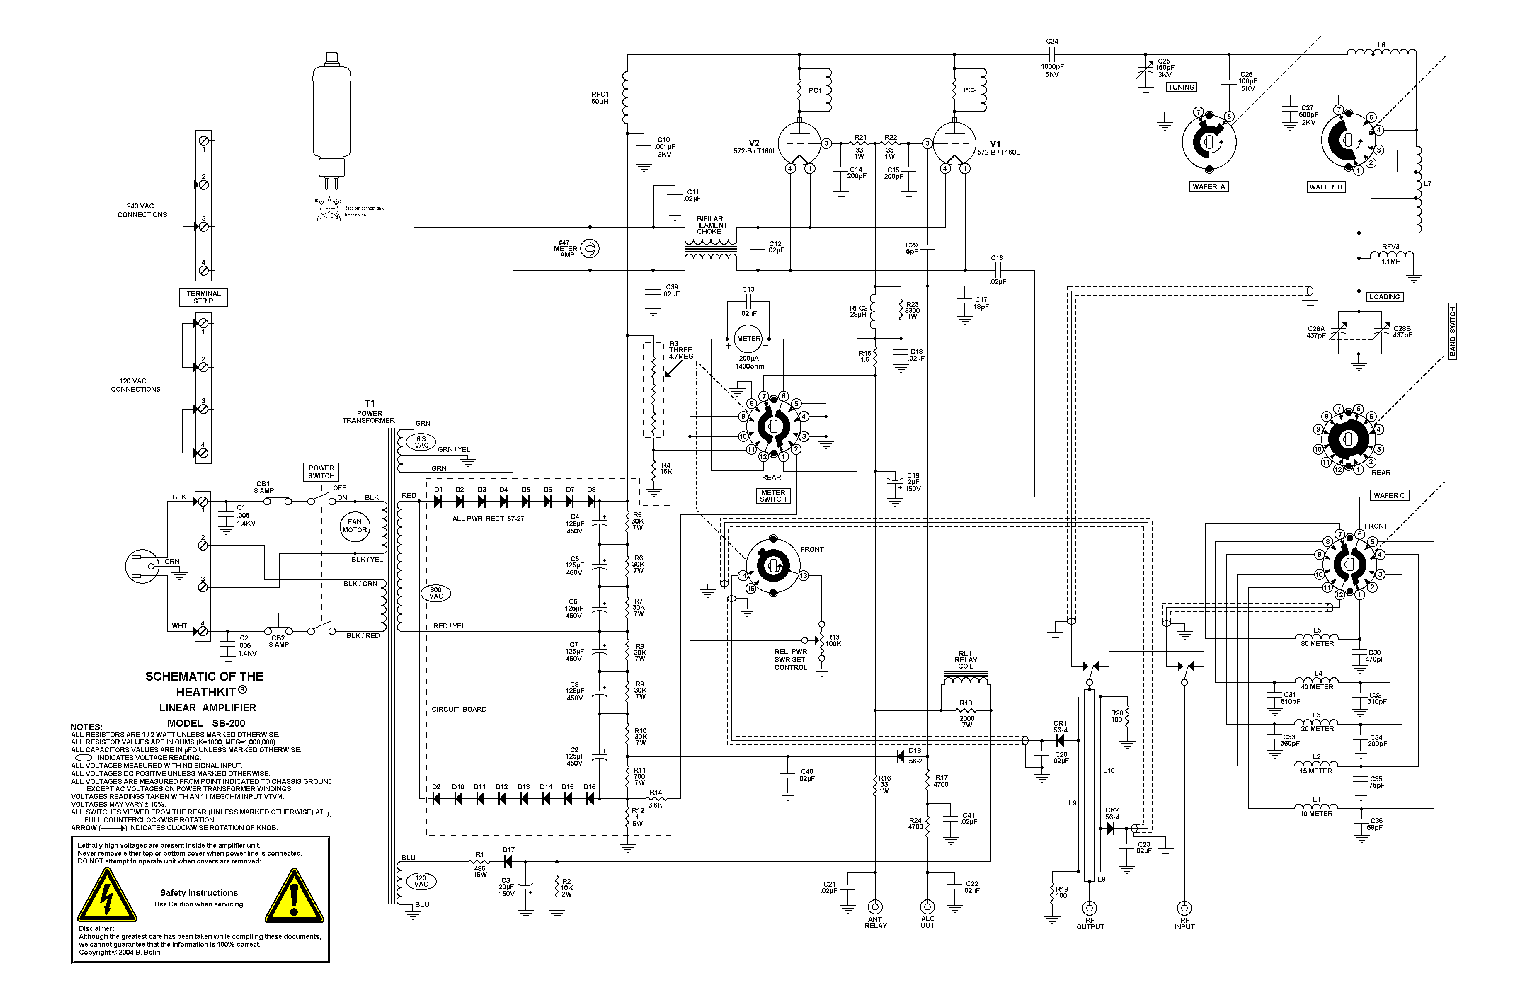 Wiring Diagram For Garage Sub Panel Com